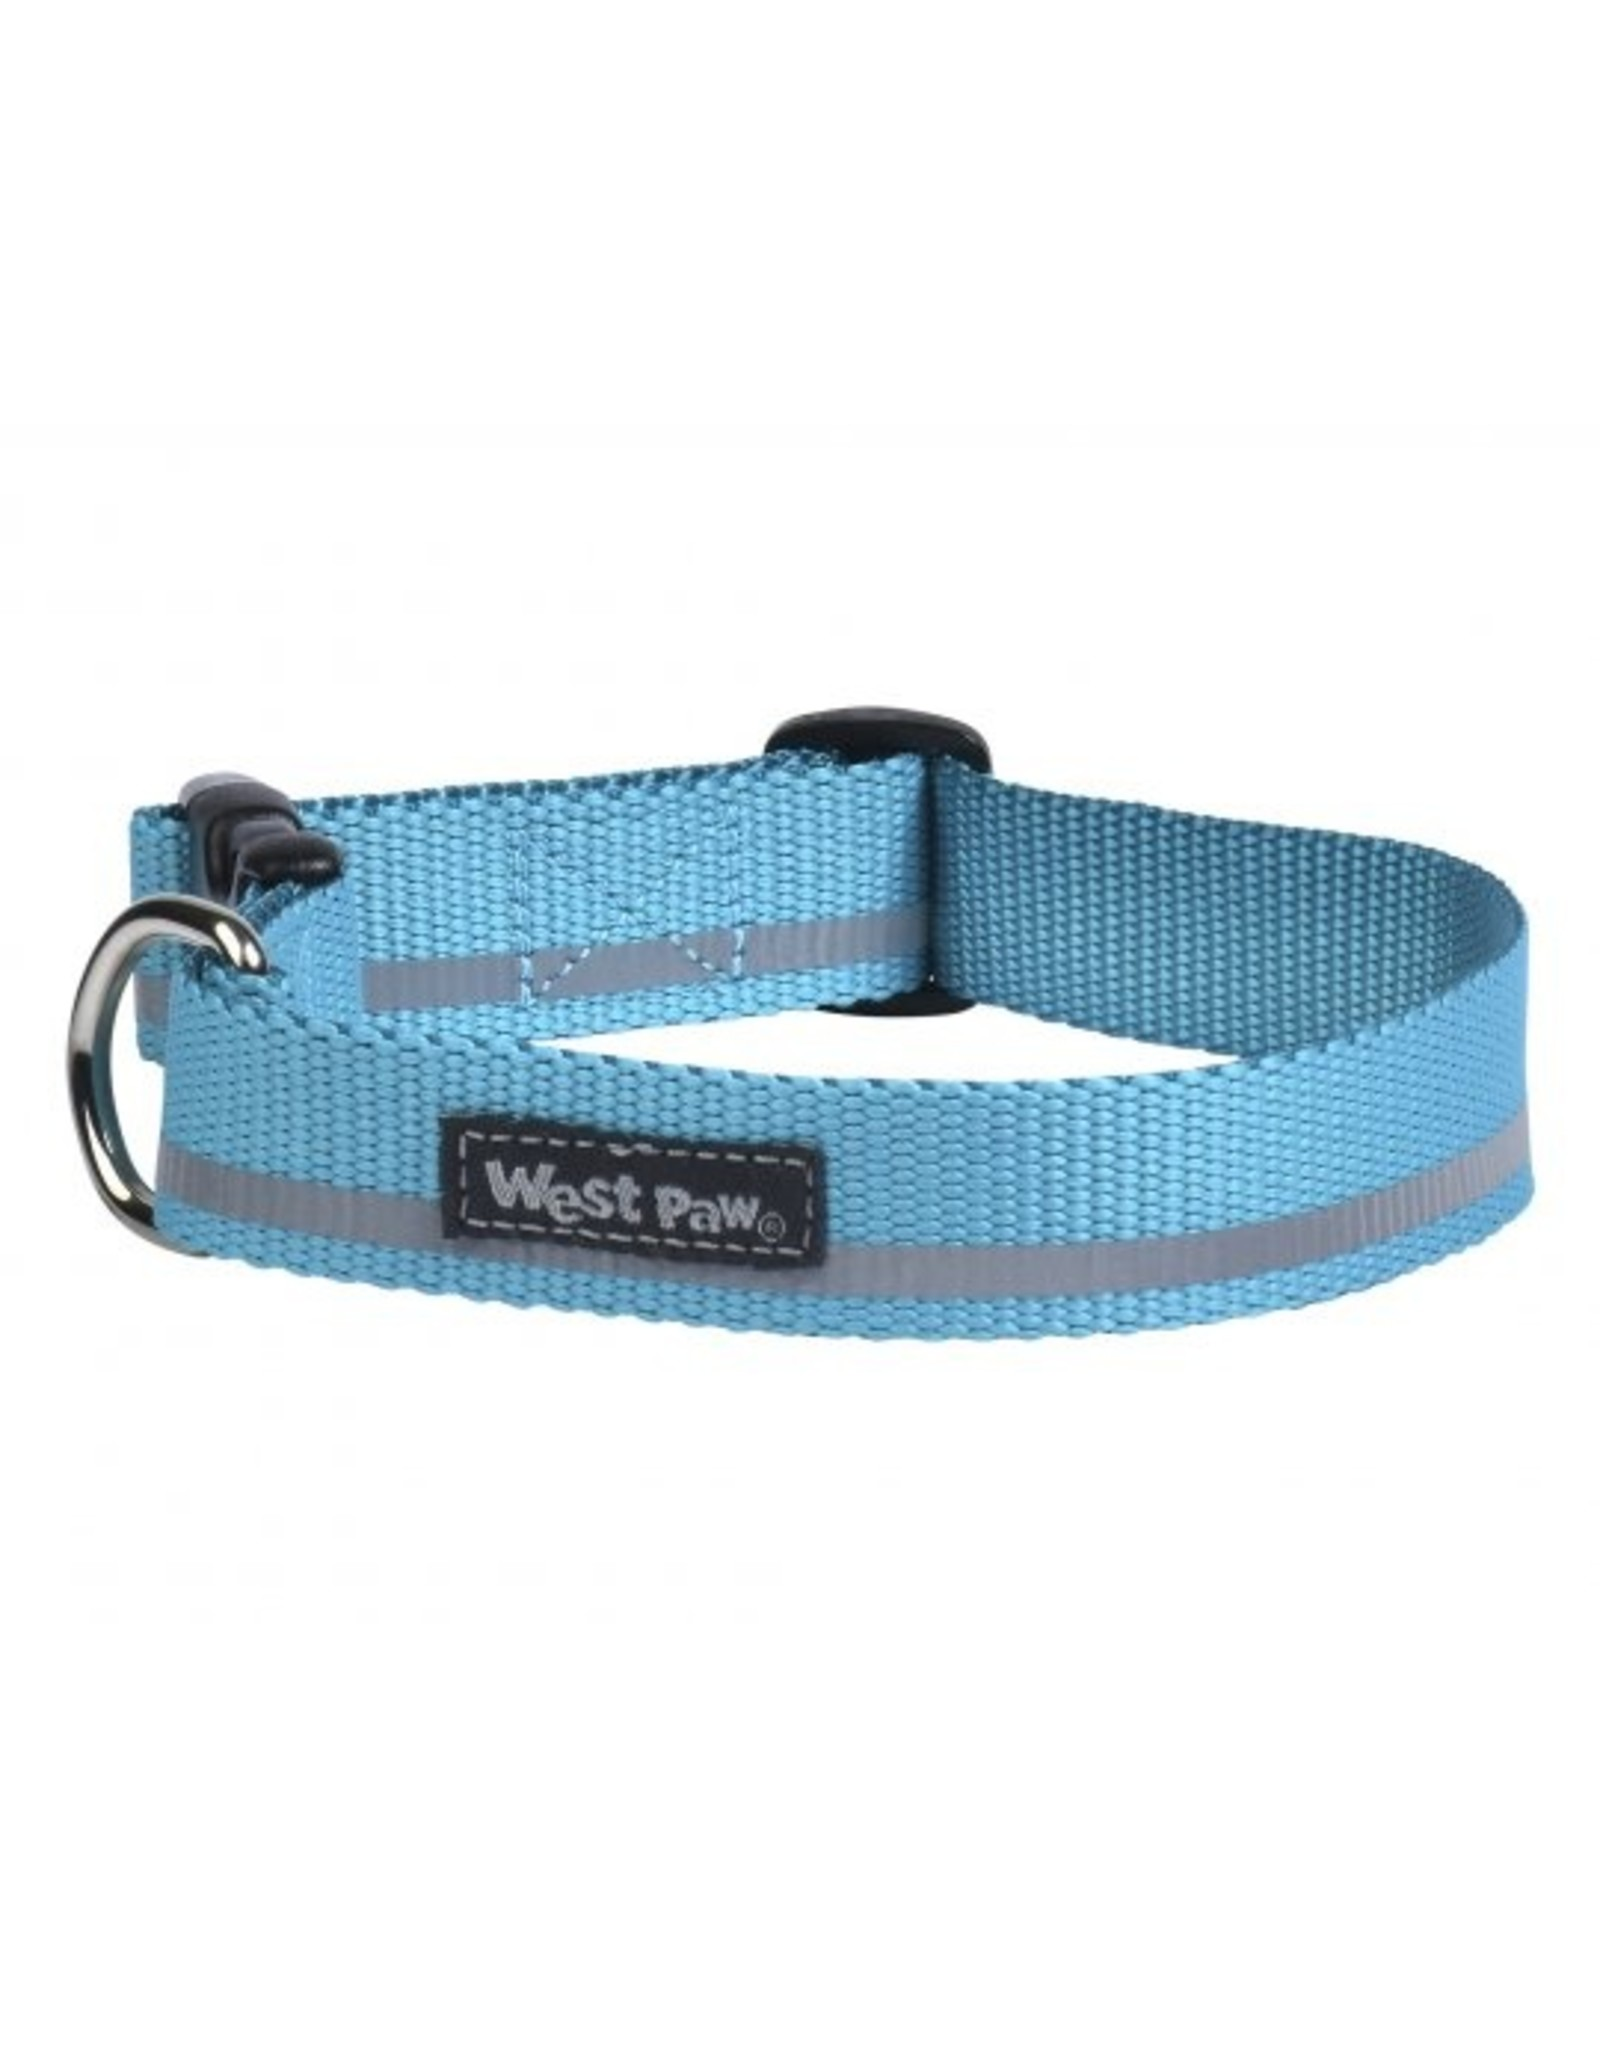 West Paw Designs Westpaw: Strolls Collar Large Turquoise Reflective